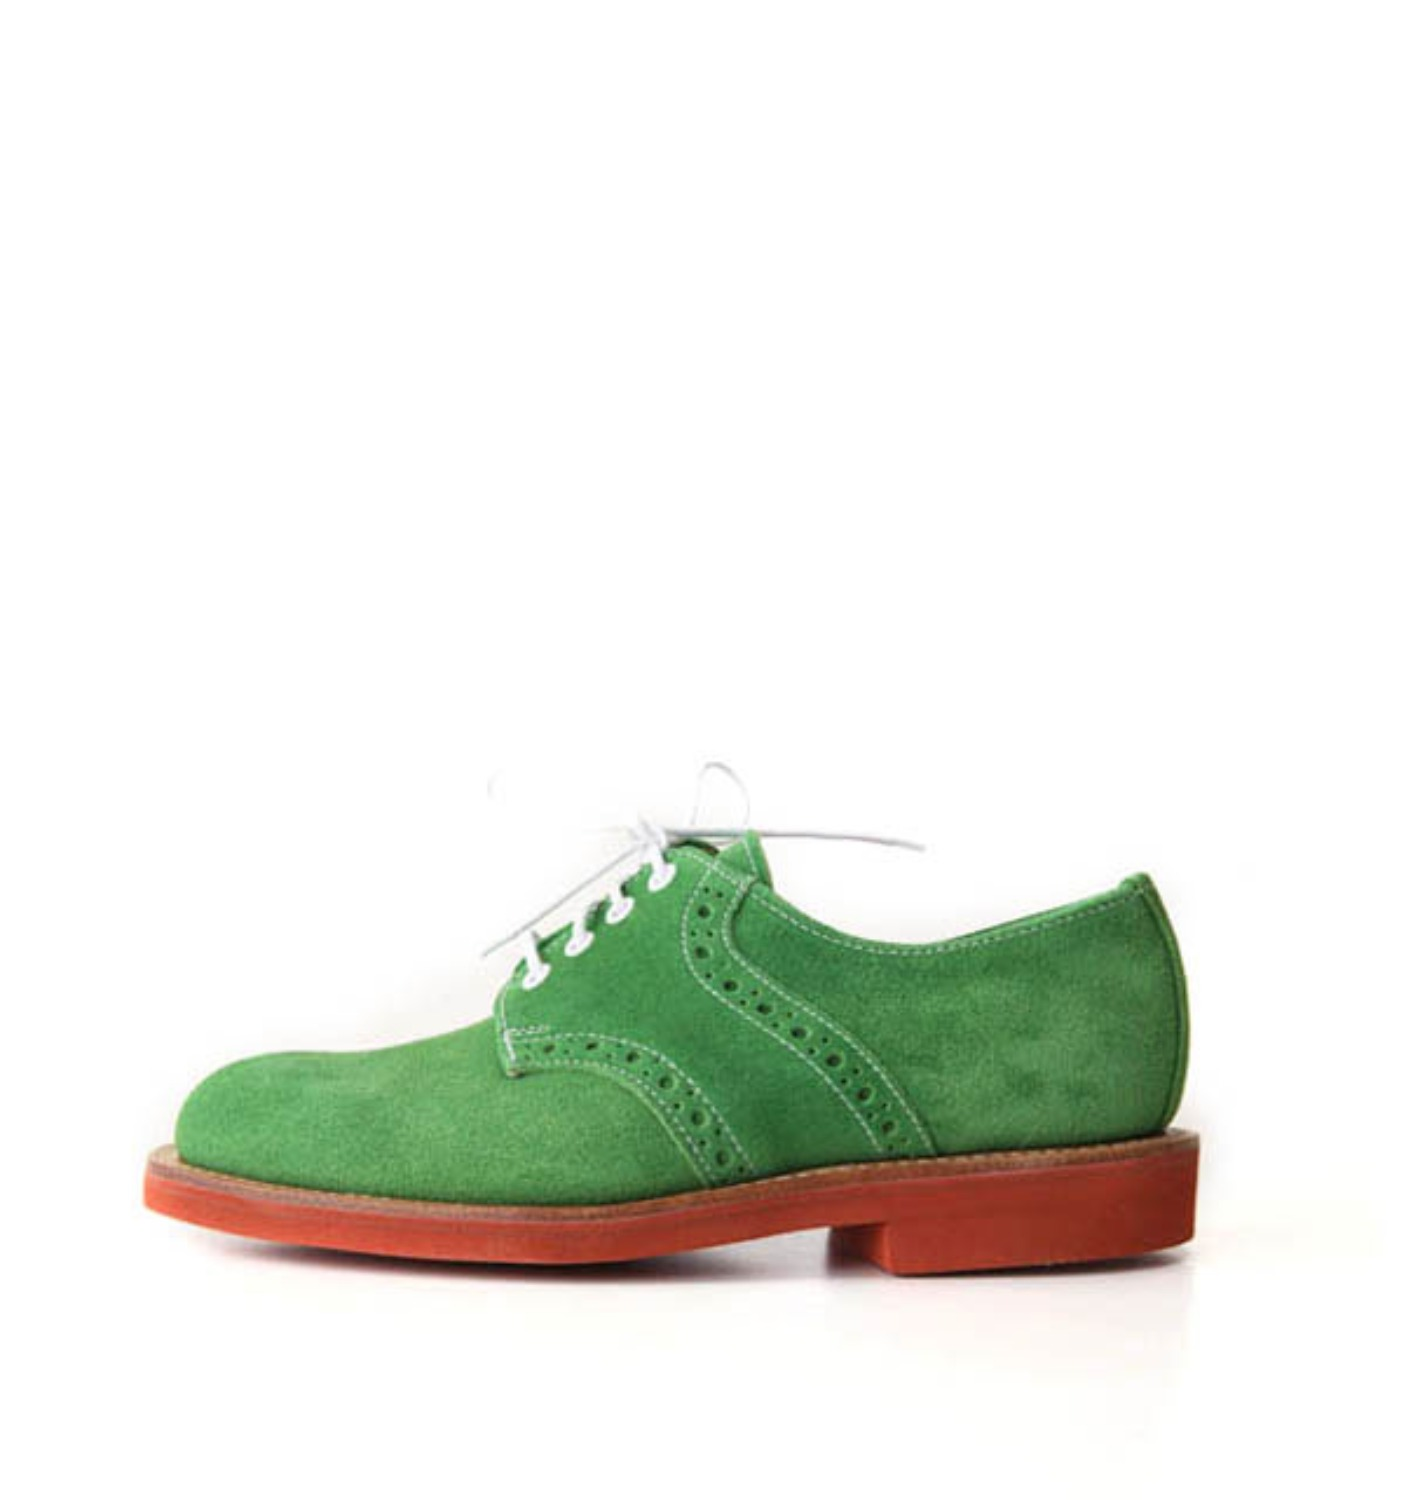 Suede Kelly Green Saddle Shoes Ladies 8788KS